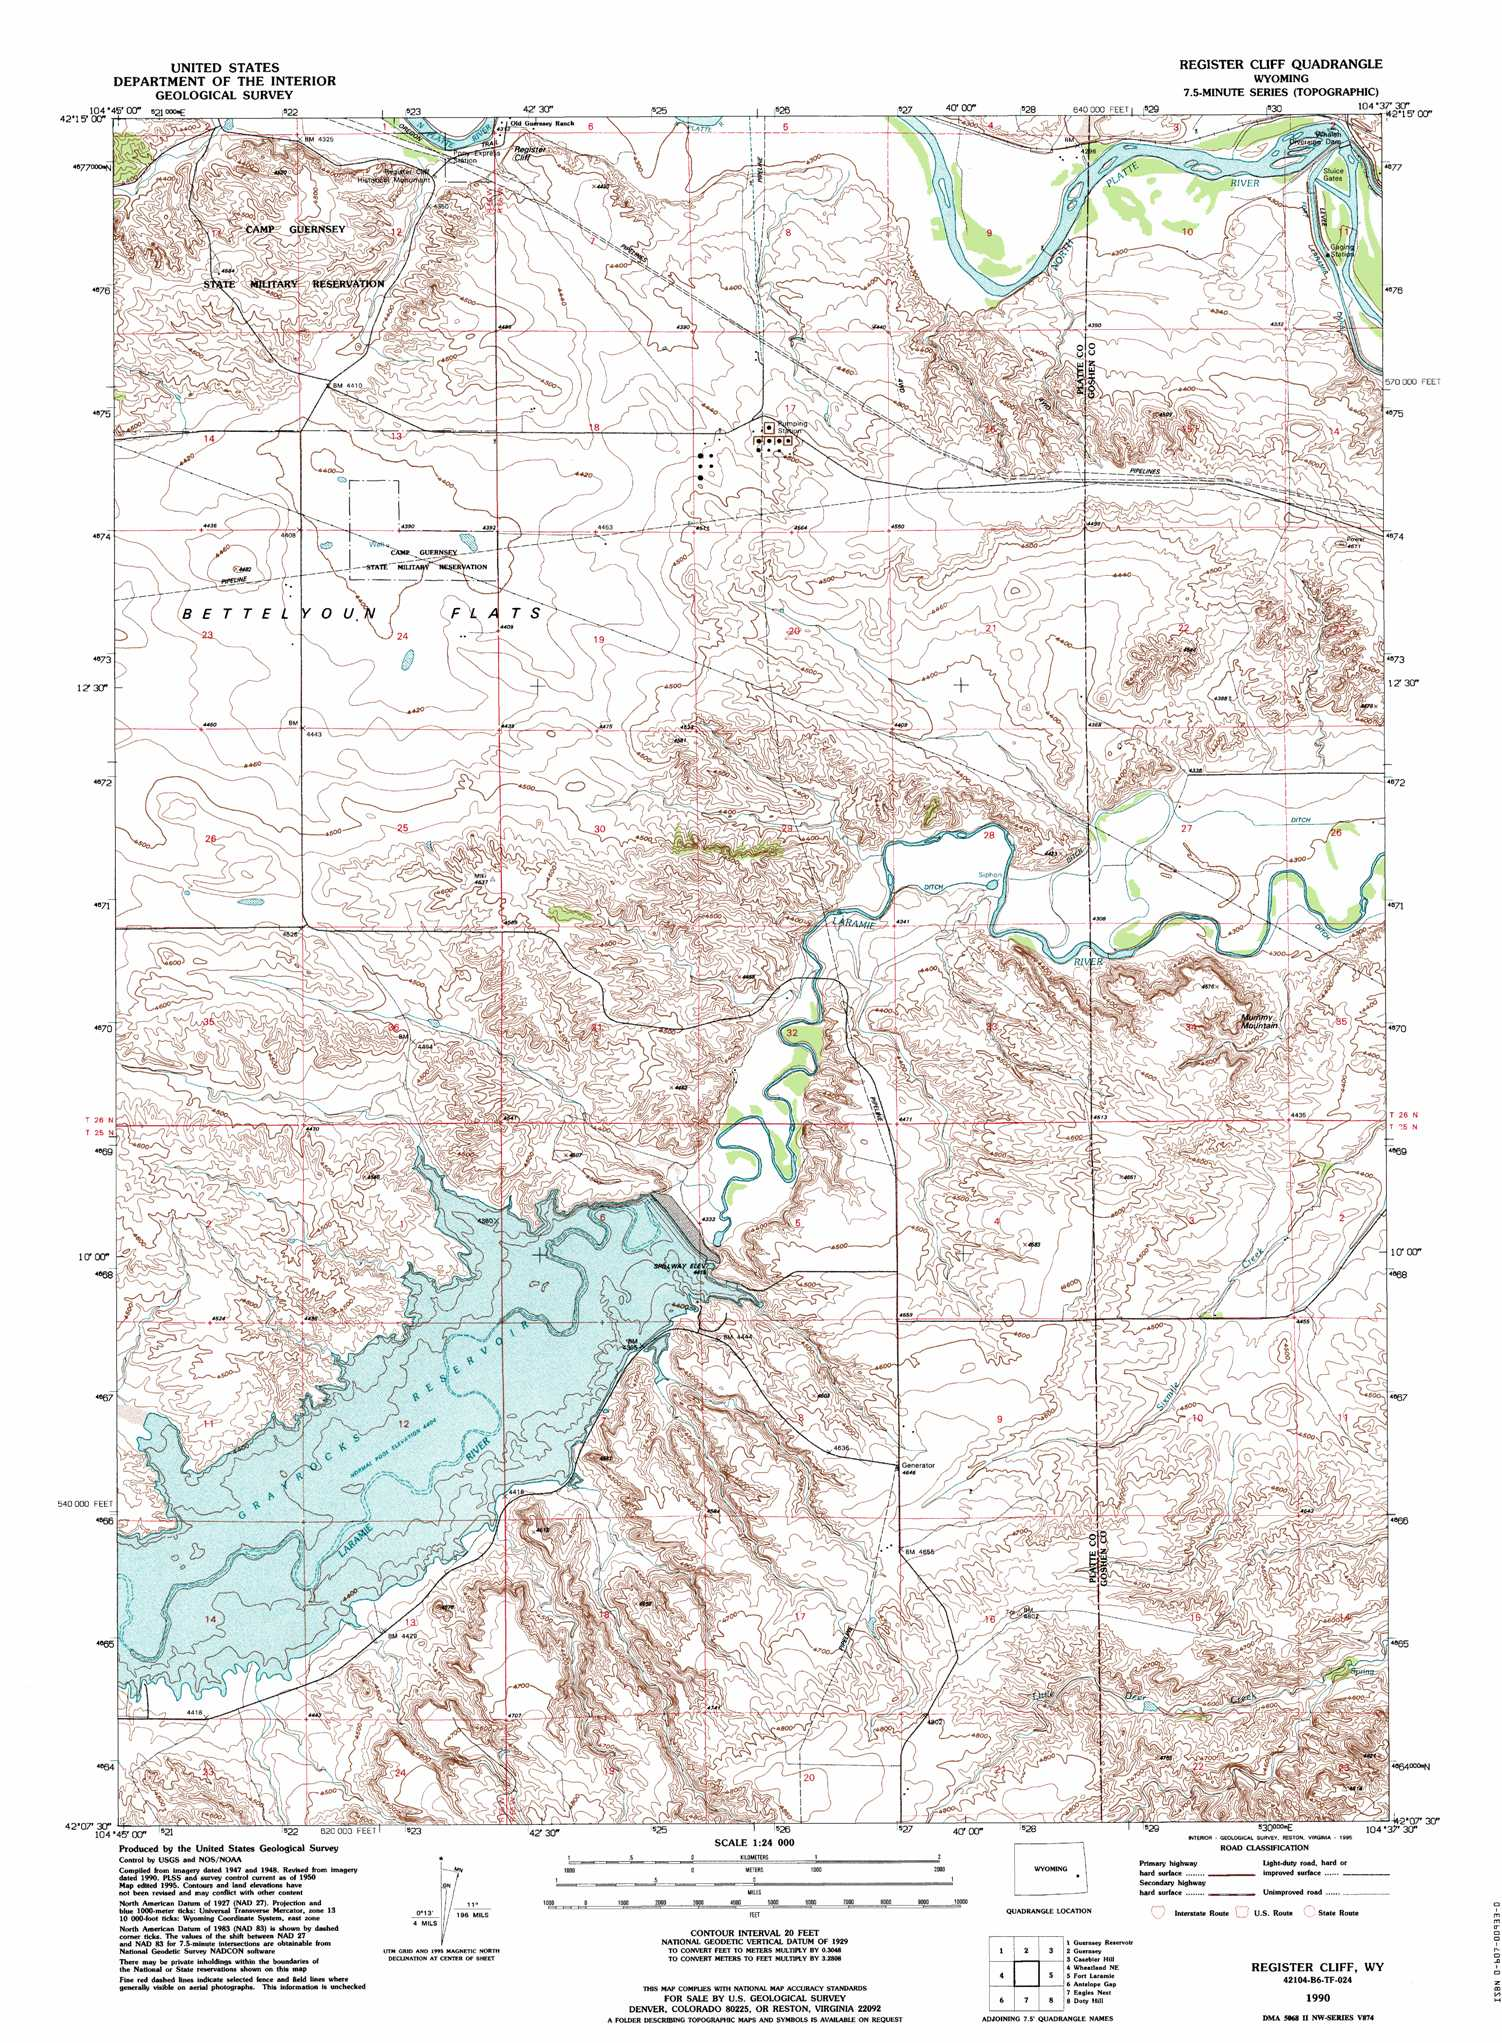 Register Cliff topographic map, WY - USGS Topo Quad 42104b6 on